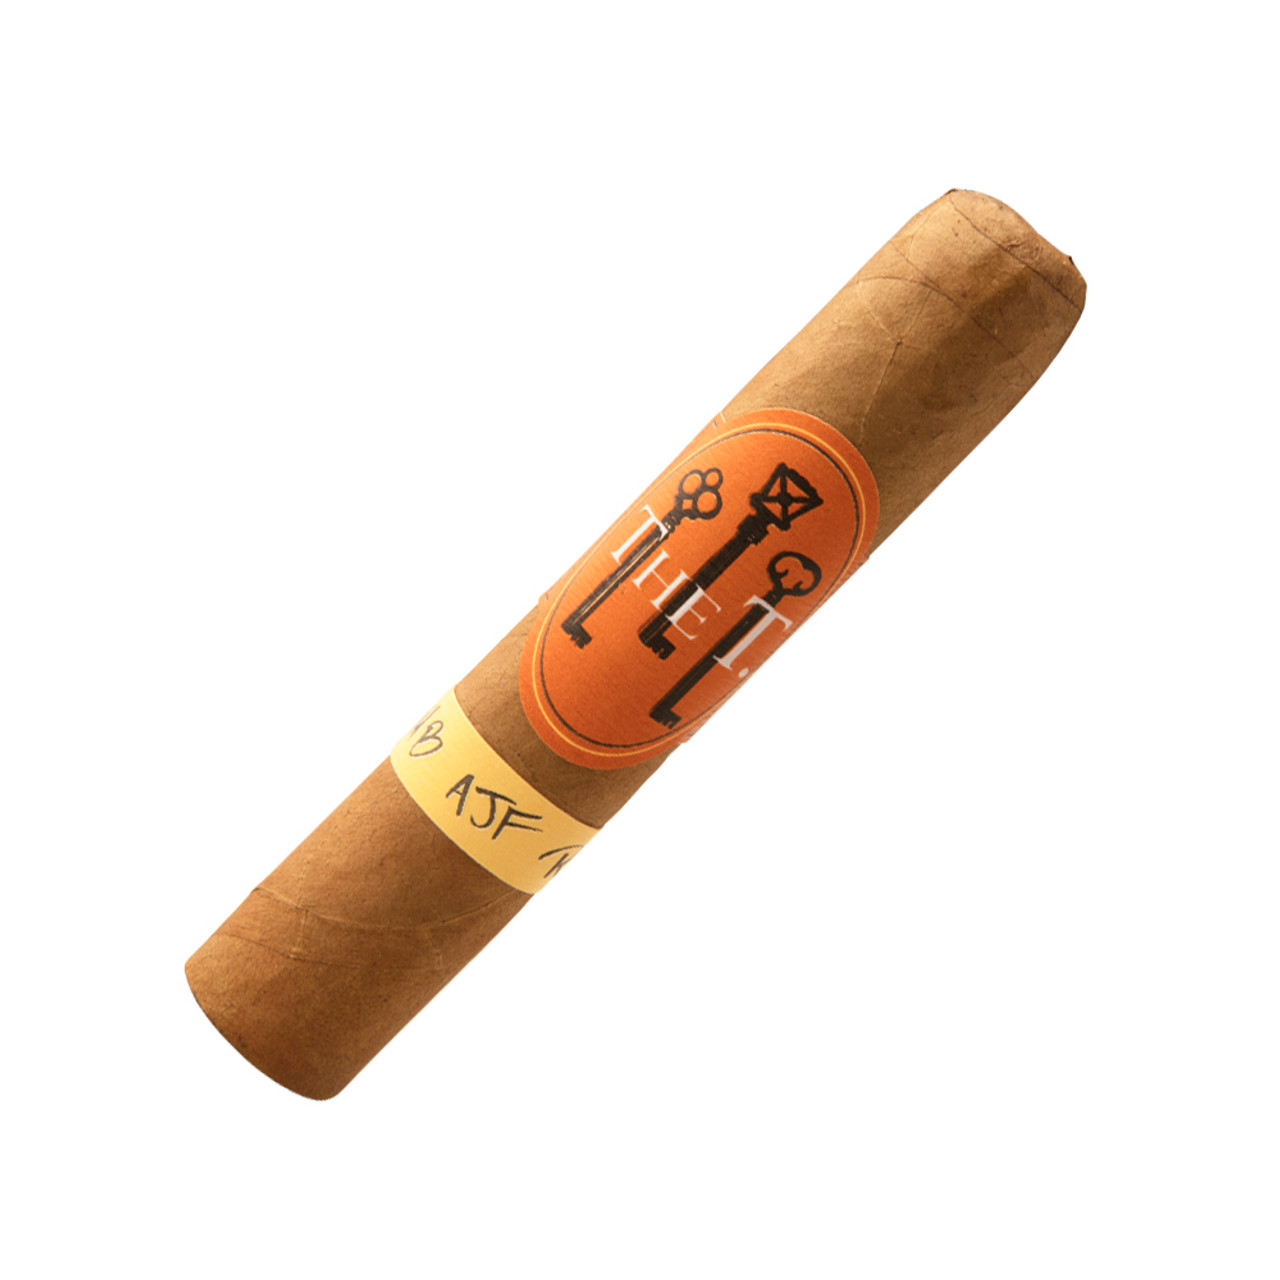 Caldwell The T. Connecticut Short Robusto Cigars - 4 x 48 (Box of 20)